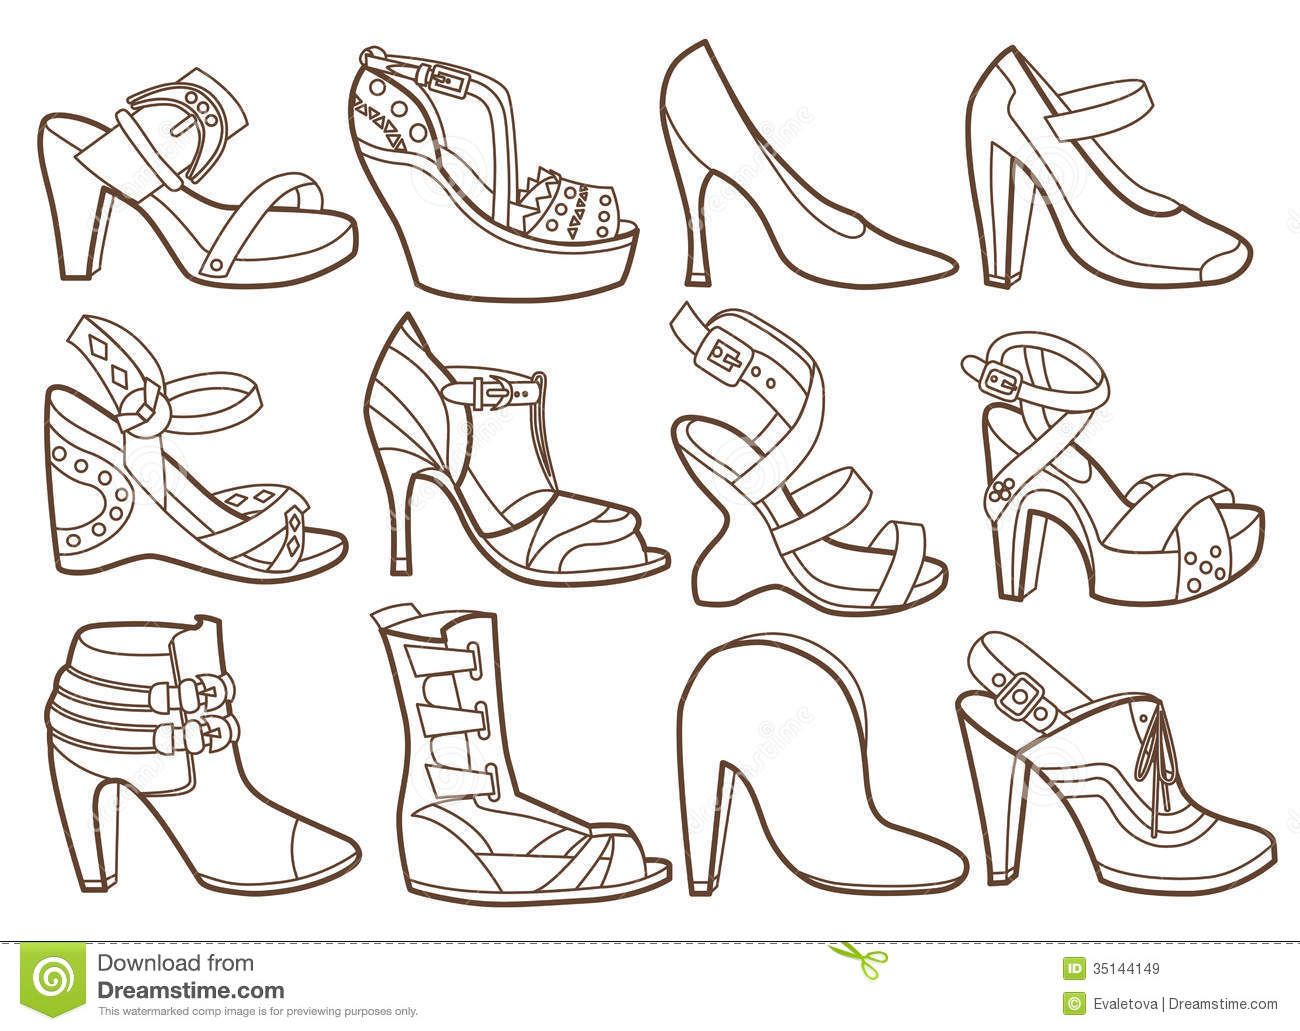 Coloring pages shoes - Fashion Shoes Collection Coloring Book